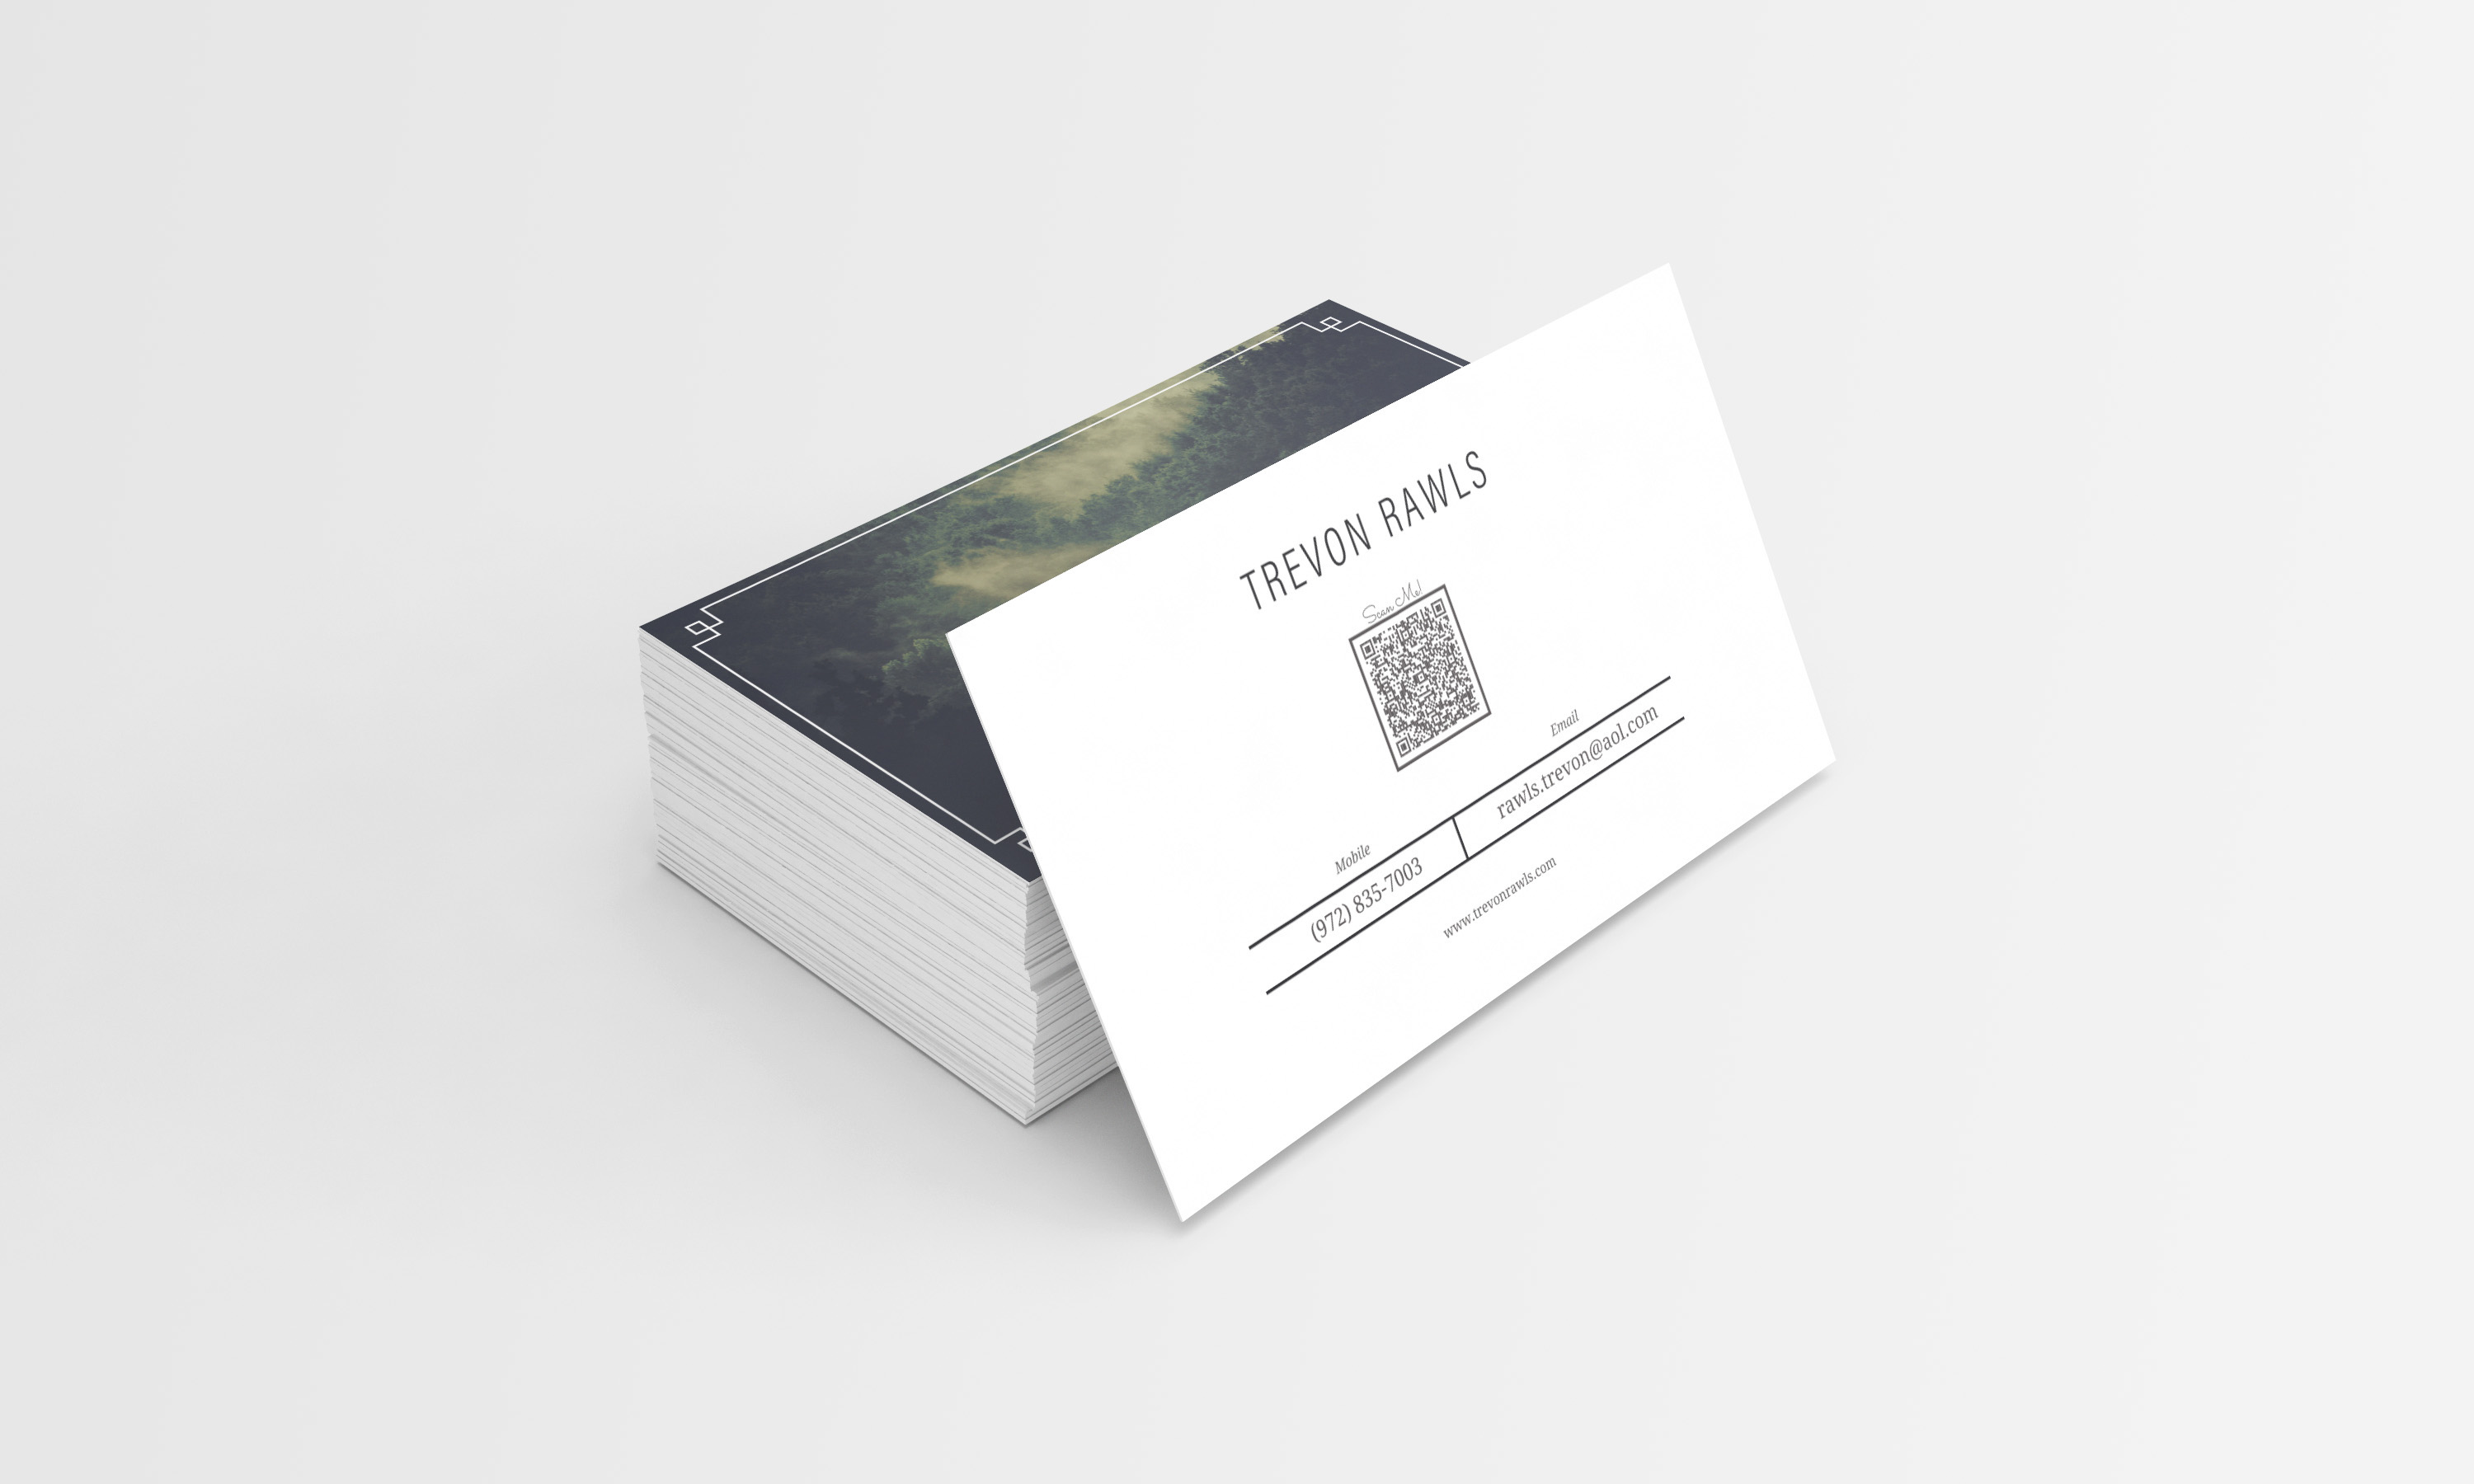 Trevon rawls personal business card personal business card colourmoves Images